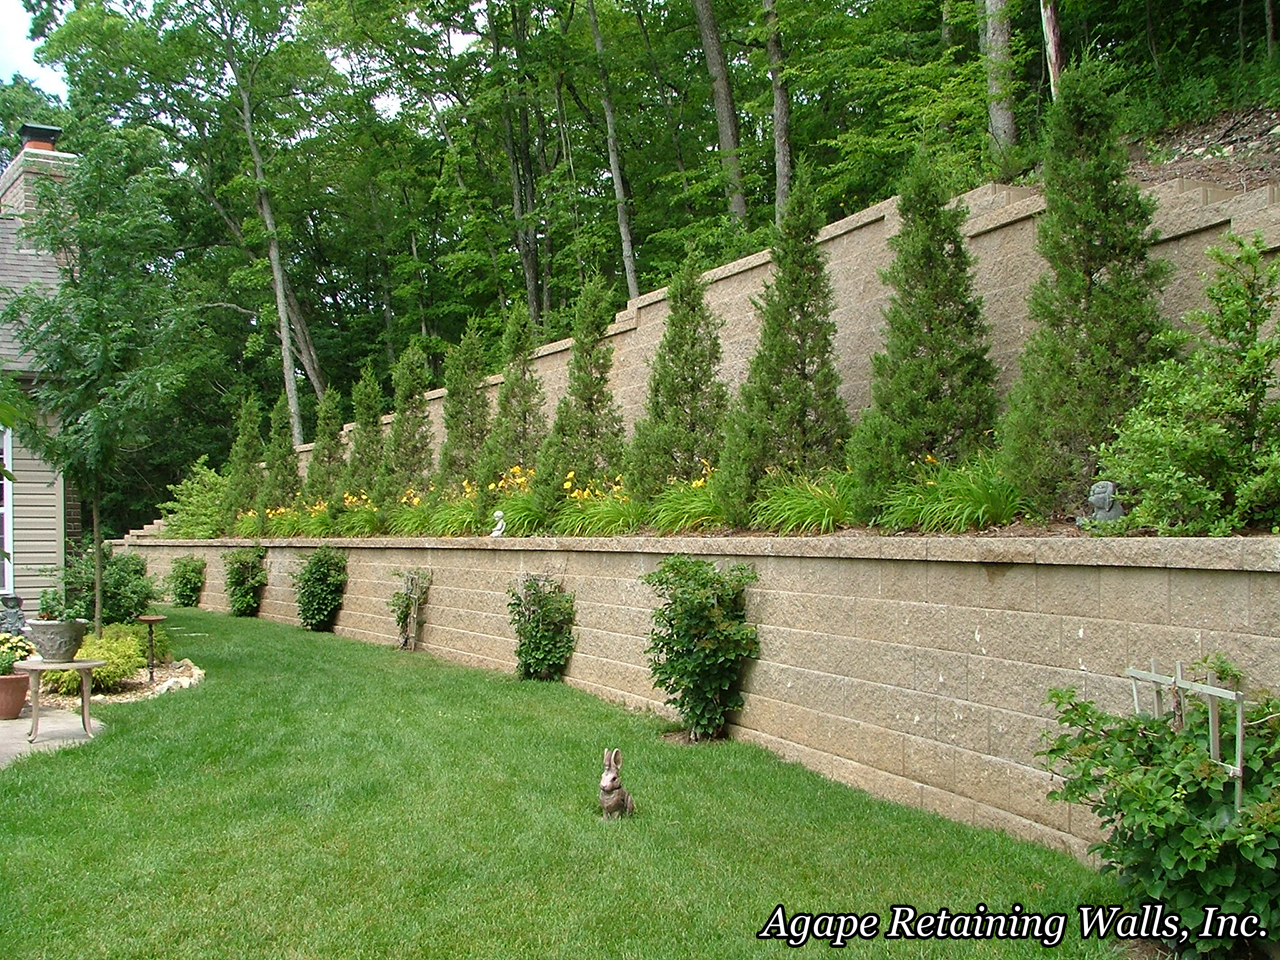 Retaining Wall Design Ideas flower bed wall designs flowers ideas Many Times The Topography Dictates Our Hardscape Design This Set Of Retaining Wall Terraces With Steps